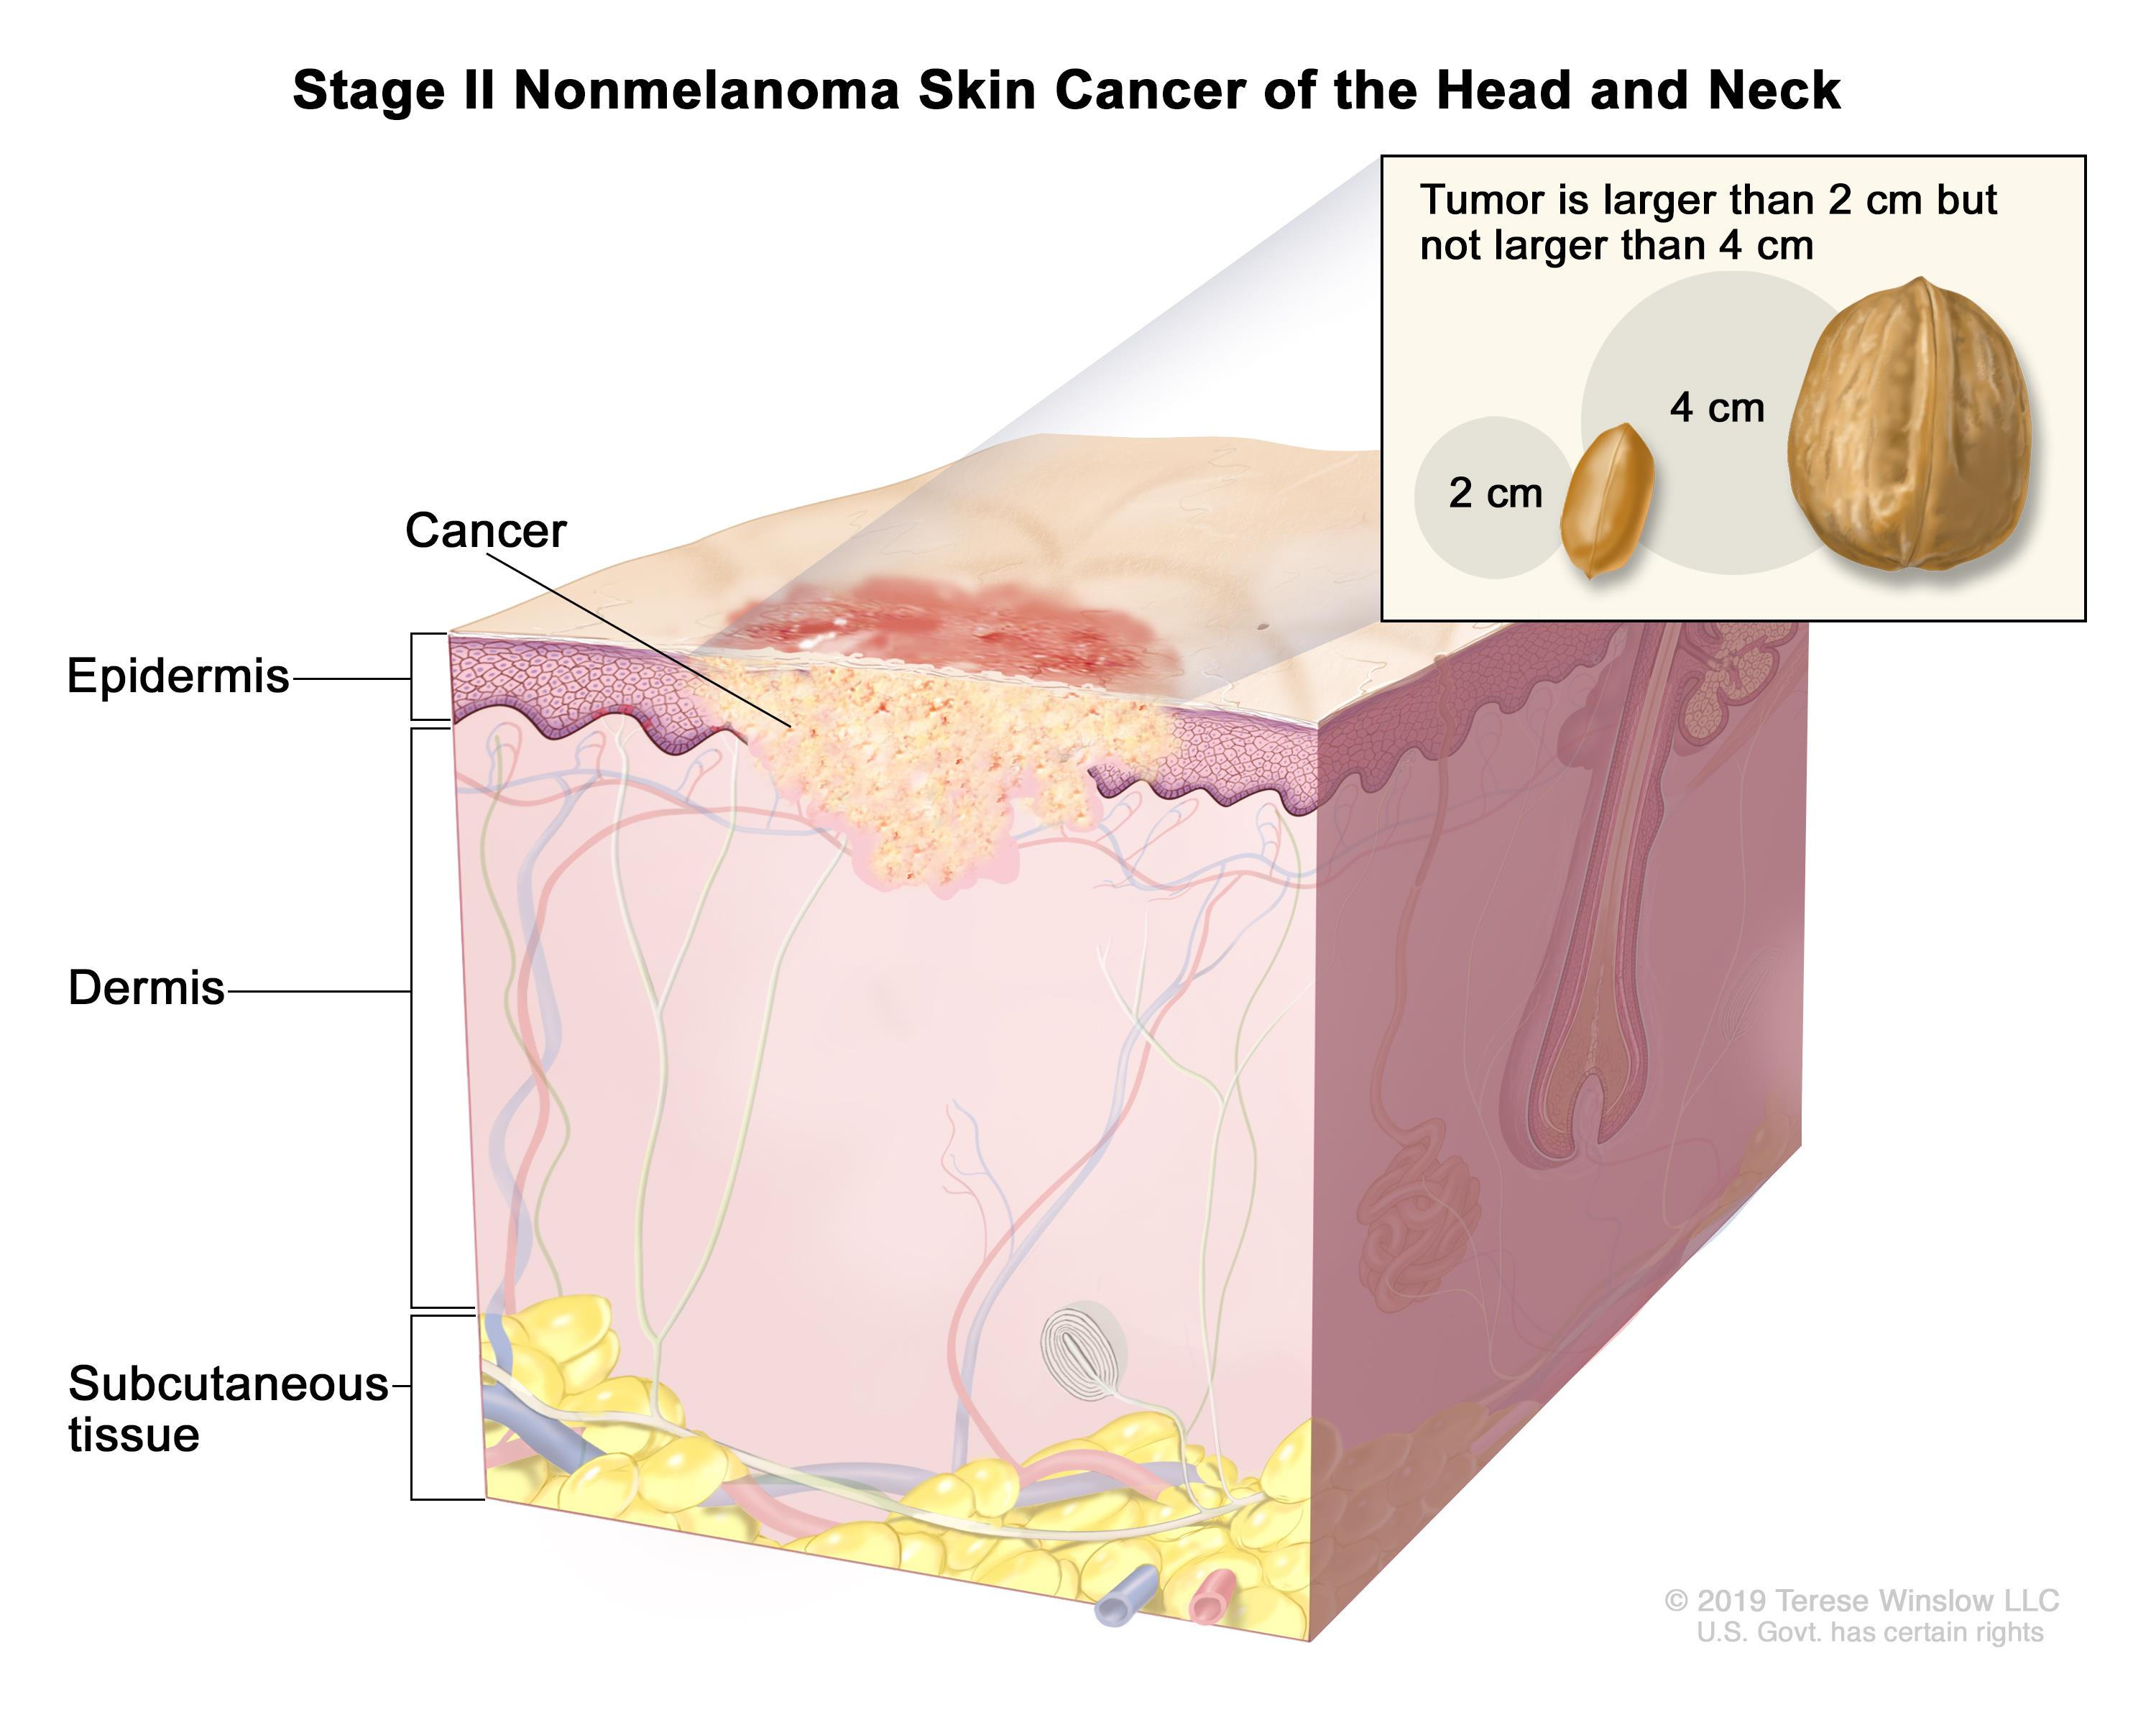 Stage II nonmelanoma skin cancer of the head and neck; drawing shows cancer in the epidermis and the dermis. An inset shows that the tumor is larger than 2 centimeters but not larger than 4 centimeters and that 2 centimeters is about the size of a peanut and 4 centimeters is about the size of a walnut. Also shown is the subcutaneous tissue below the dermis.